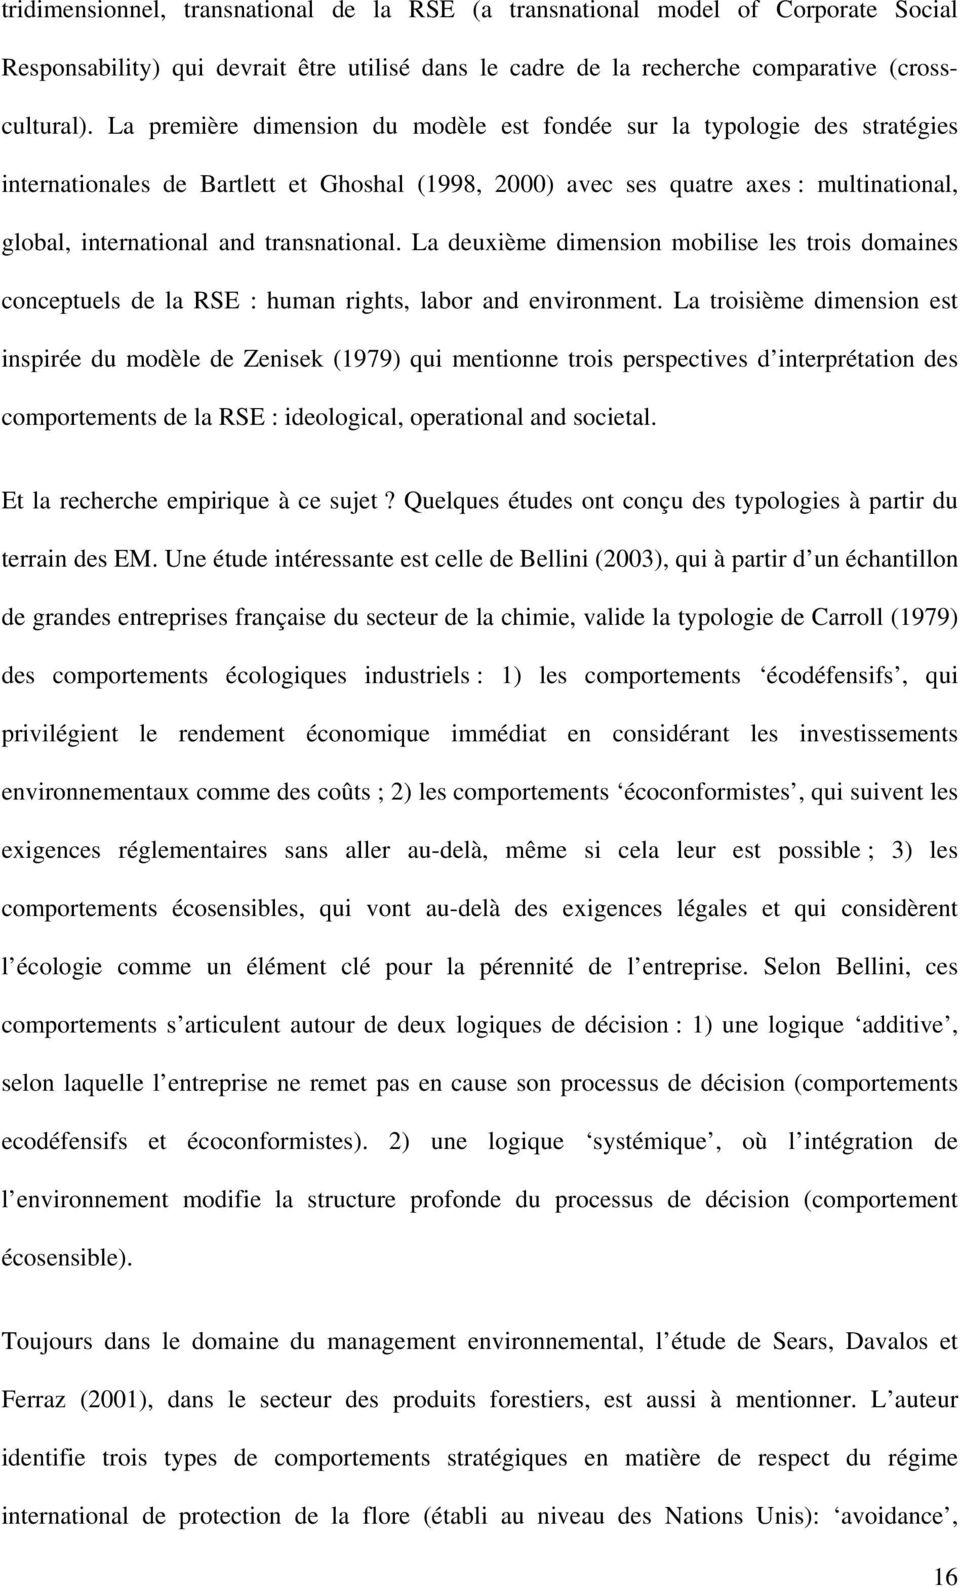 transnational. La deuxième dimension mobilise les trois domaines conceptuels de la RSE : human rights, labor and environment.